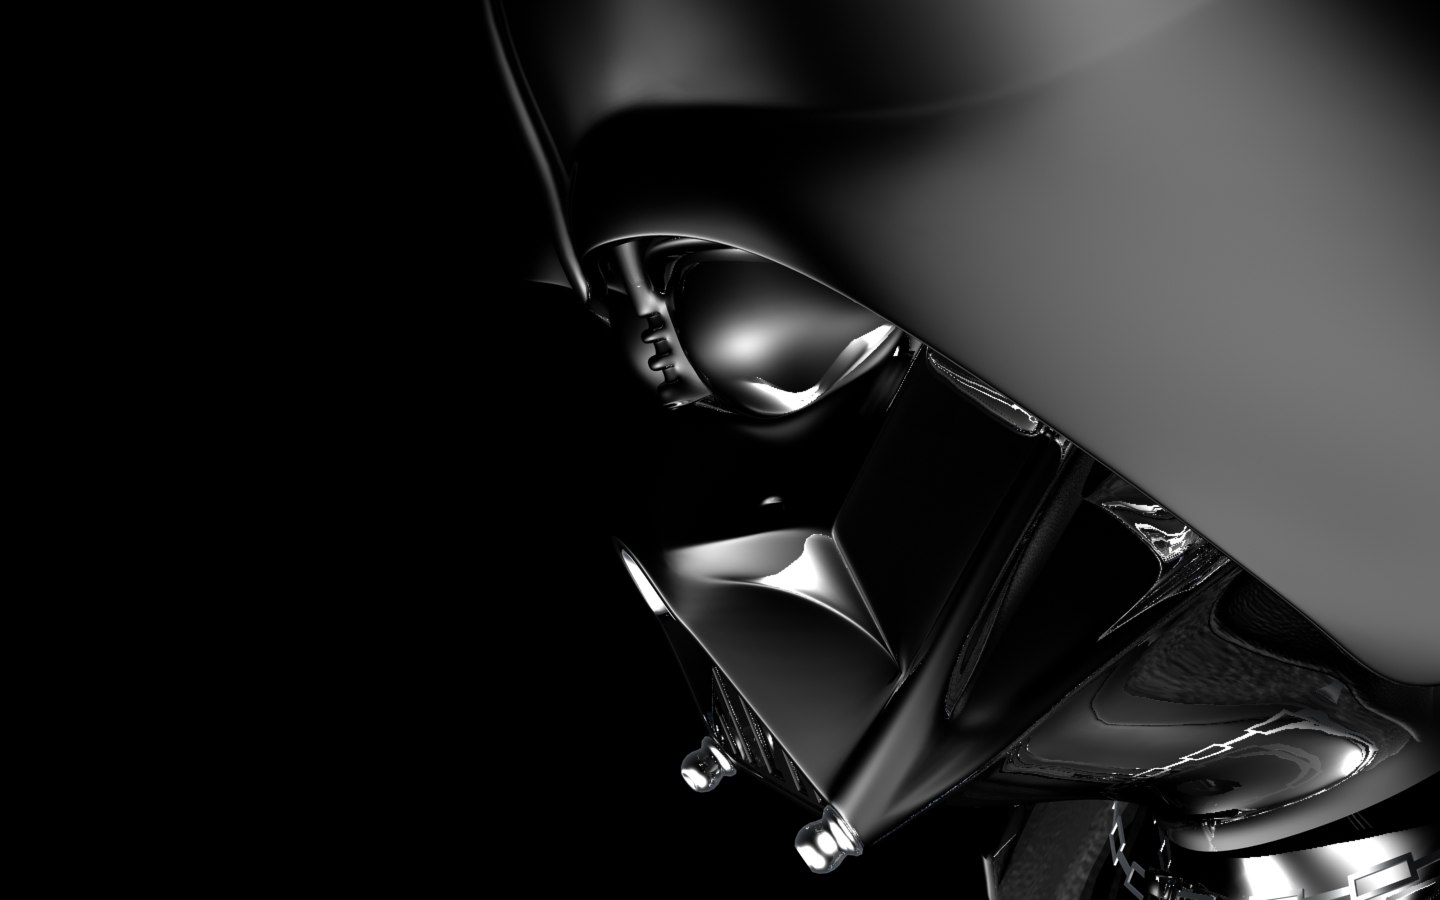 star wars darth vador wallpapers - 83 Darth Vader HD Wallpapers Backgrounds Wallpaper